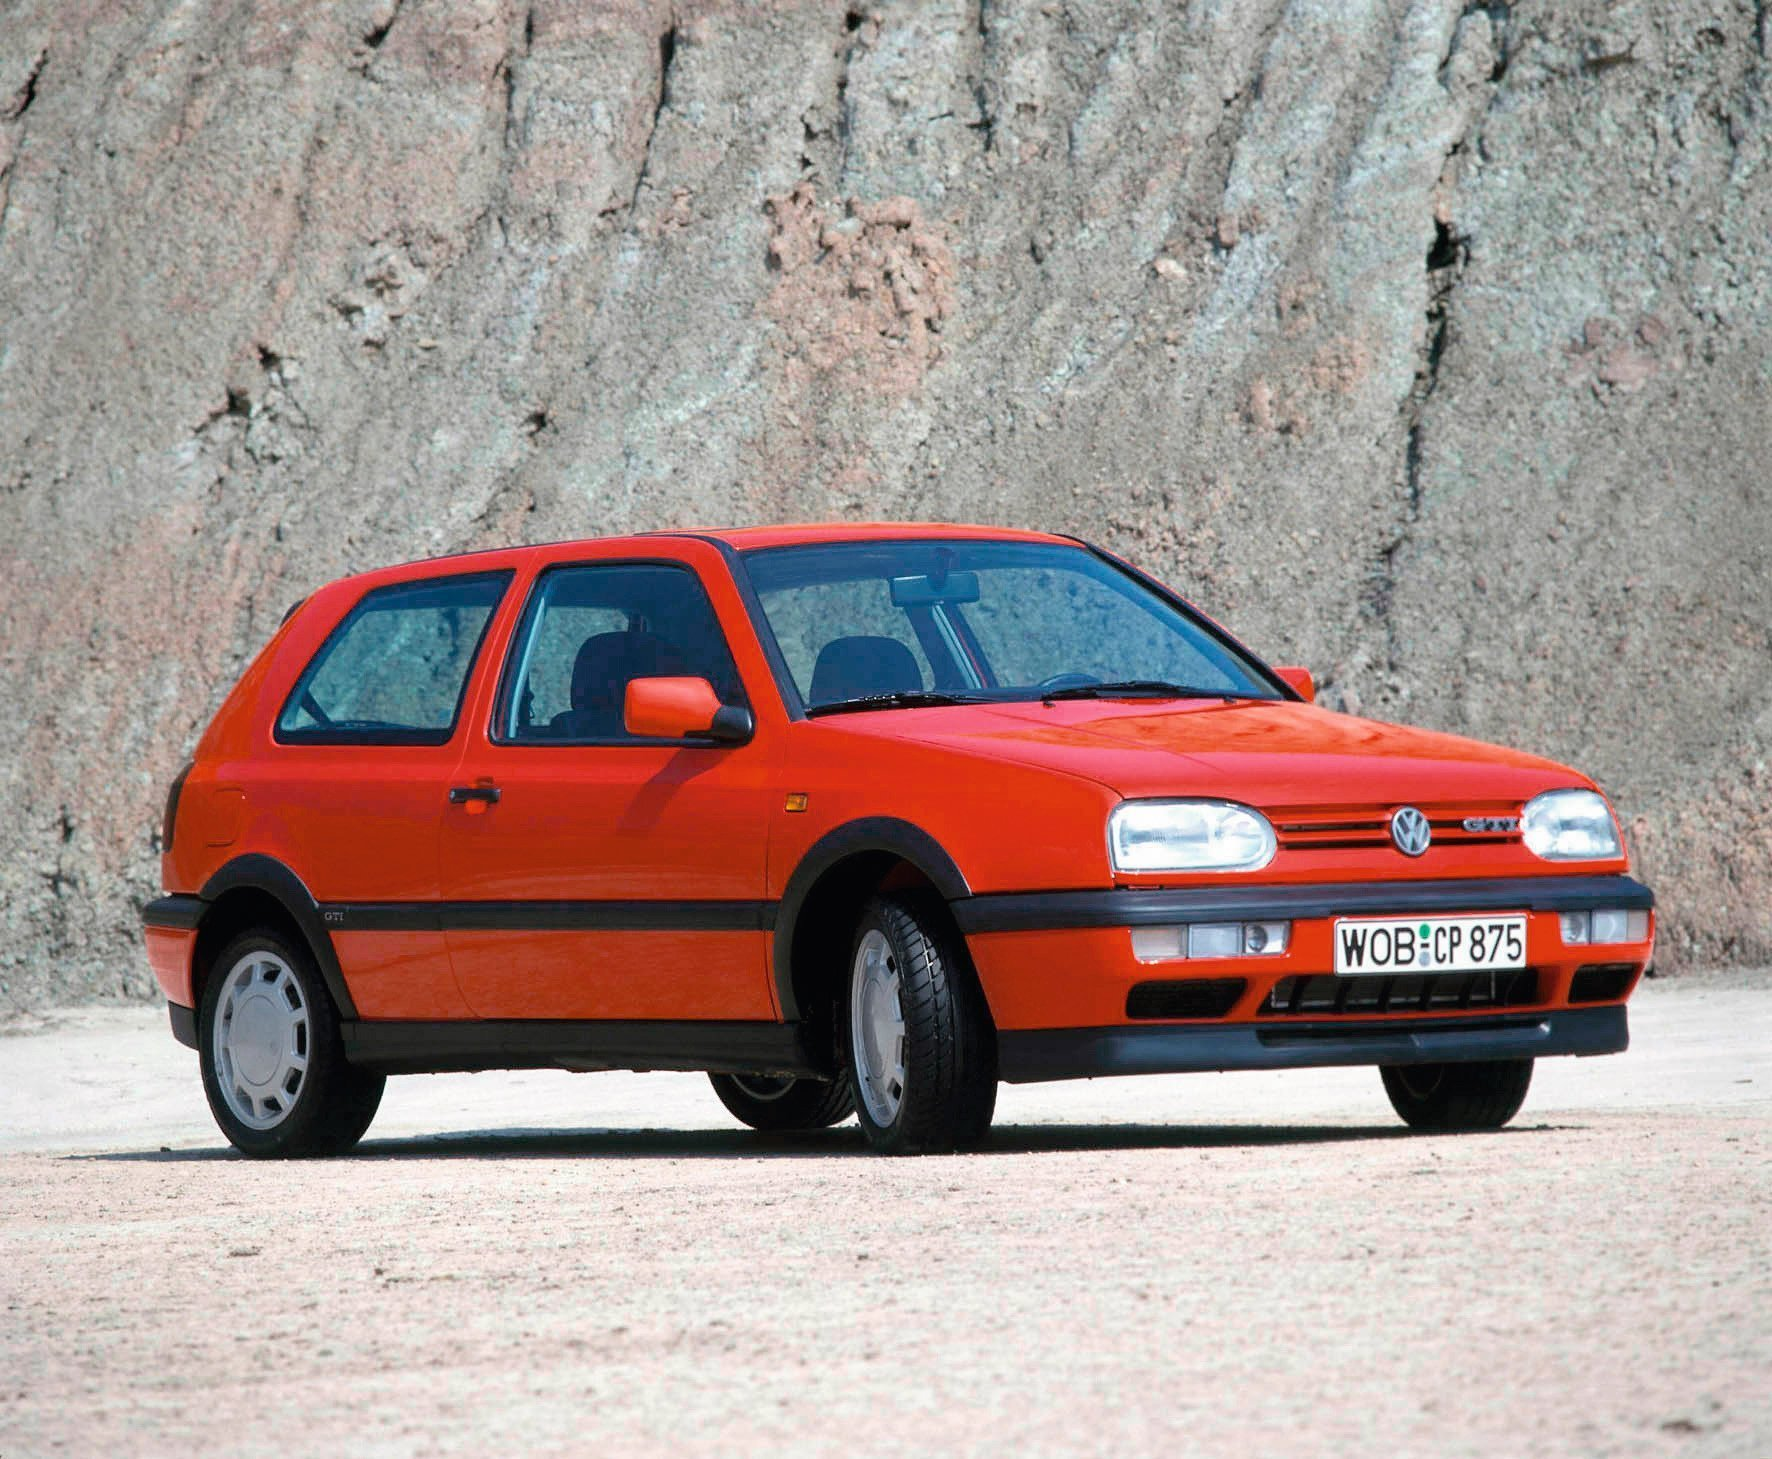 Golf MK3 - The Godfather of the Corrado Plus Chassis